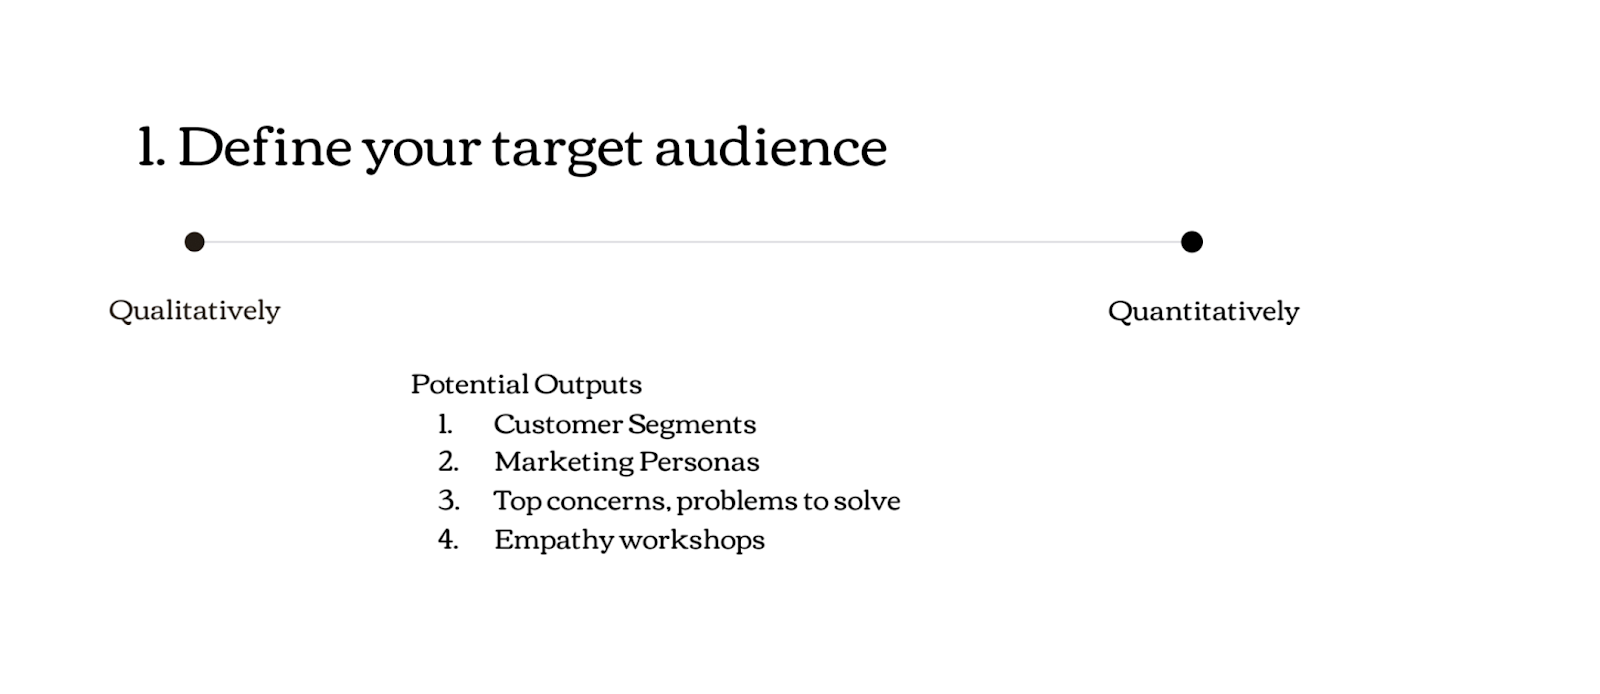 The potential outputs of defining your audience